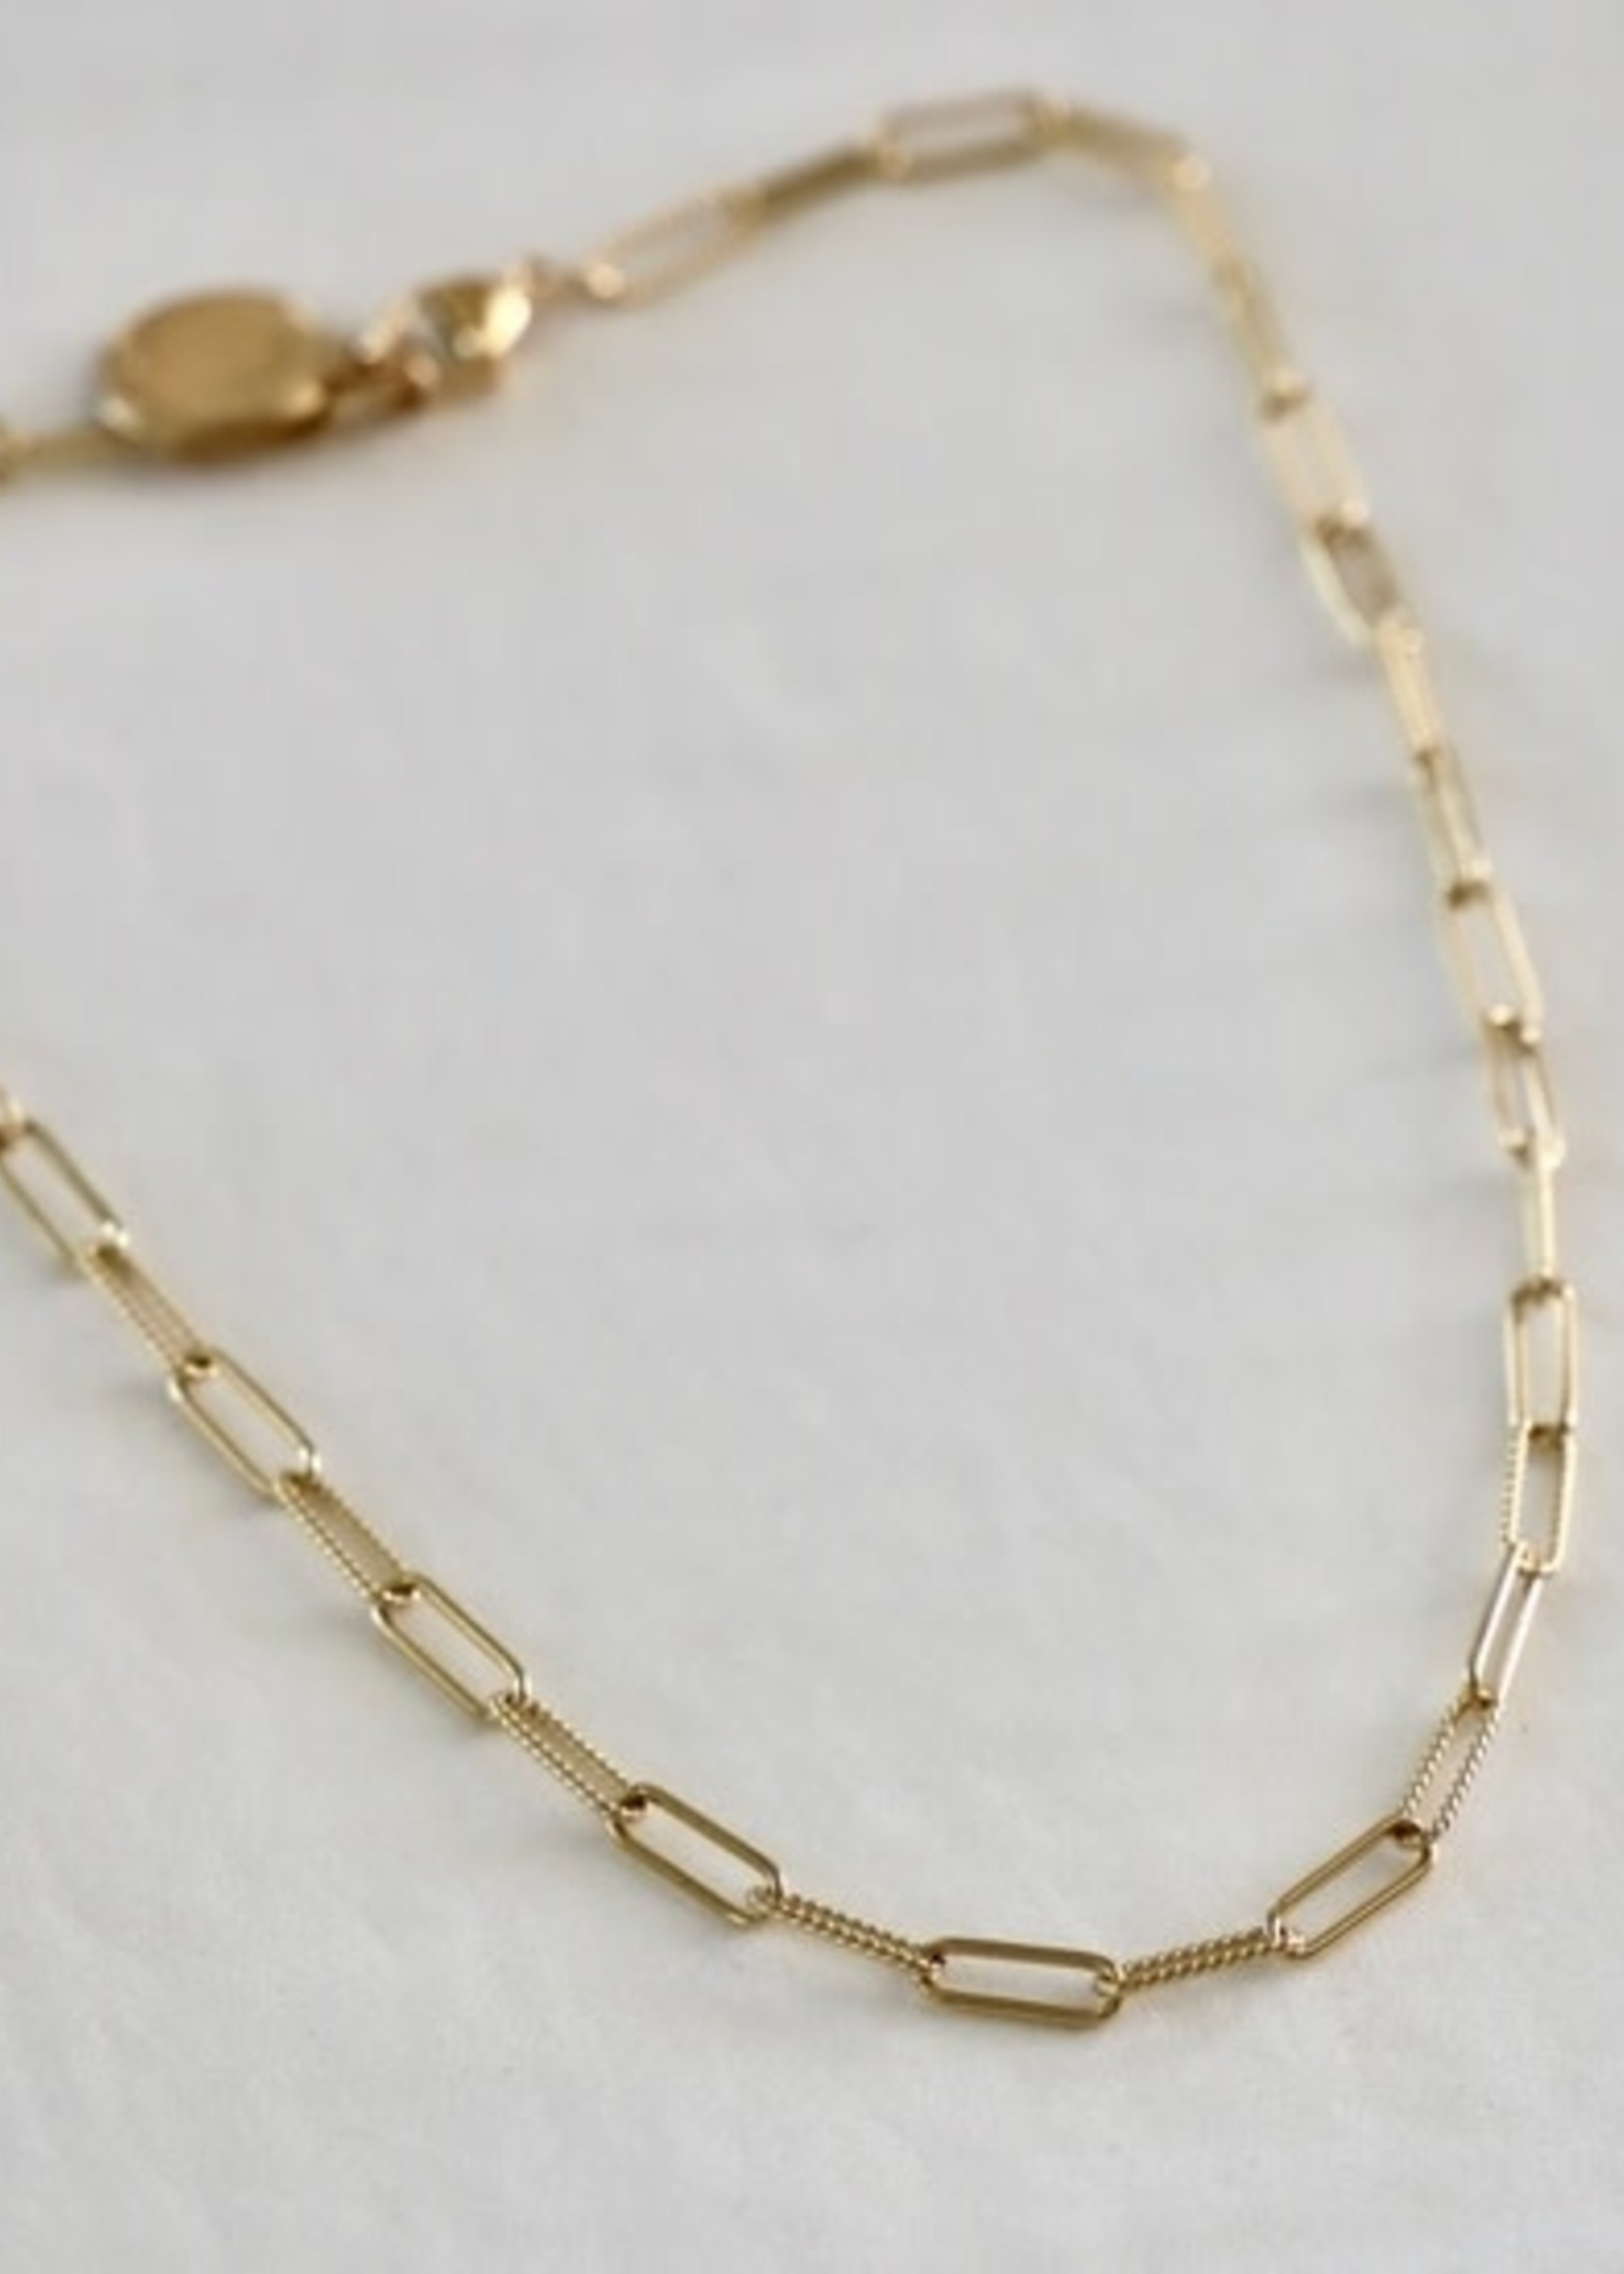 Katie Waltman Jewelry ELONGATED CHAIN WITH VINTAGE COIN